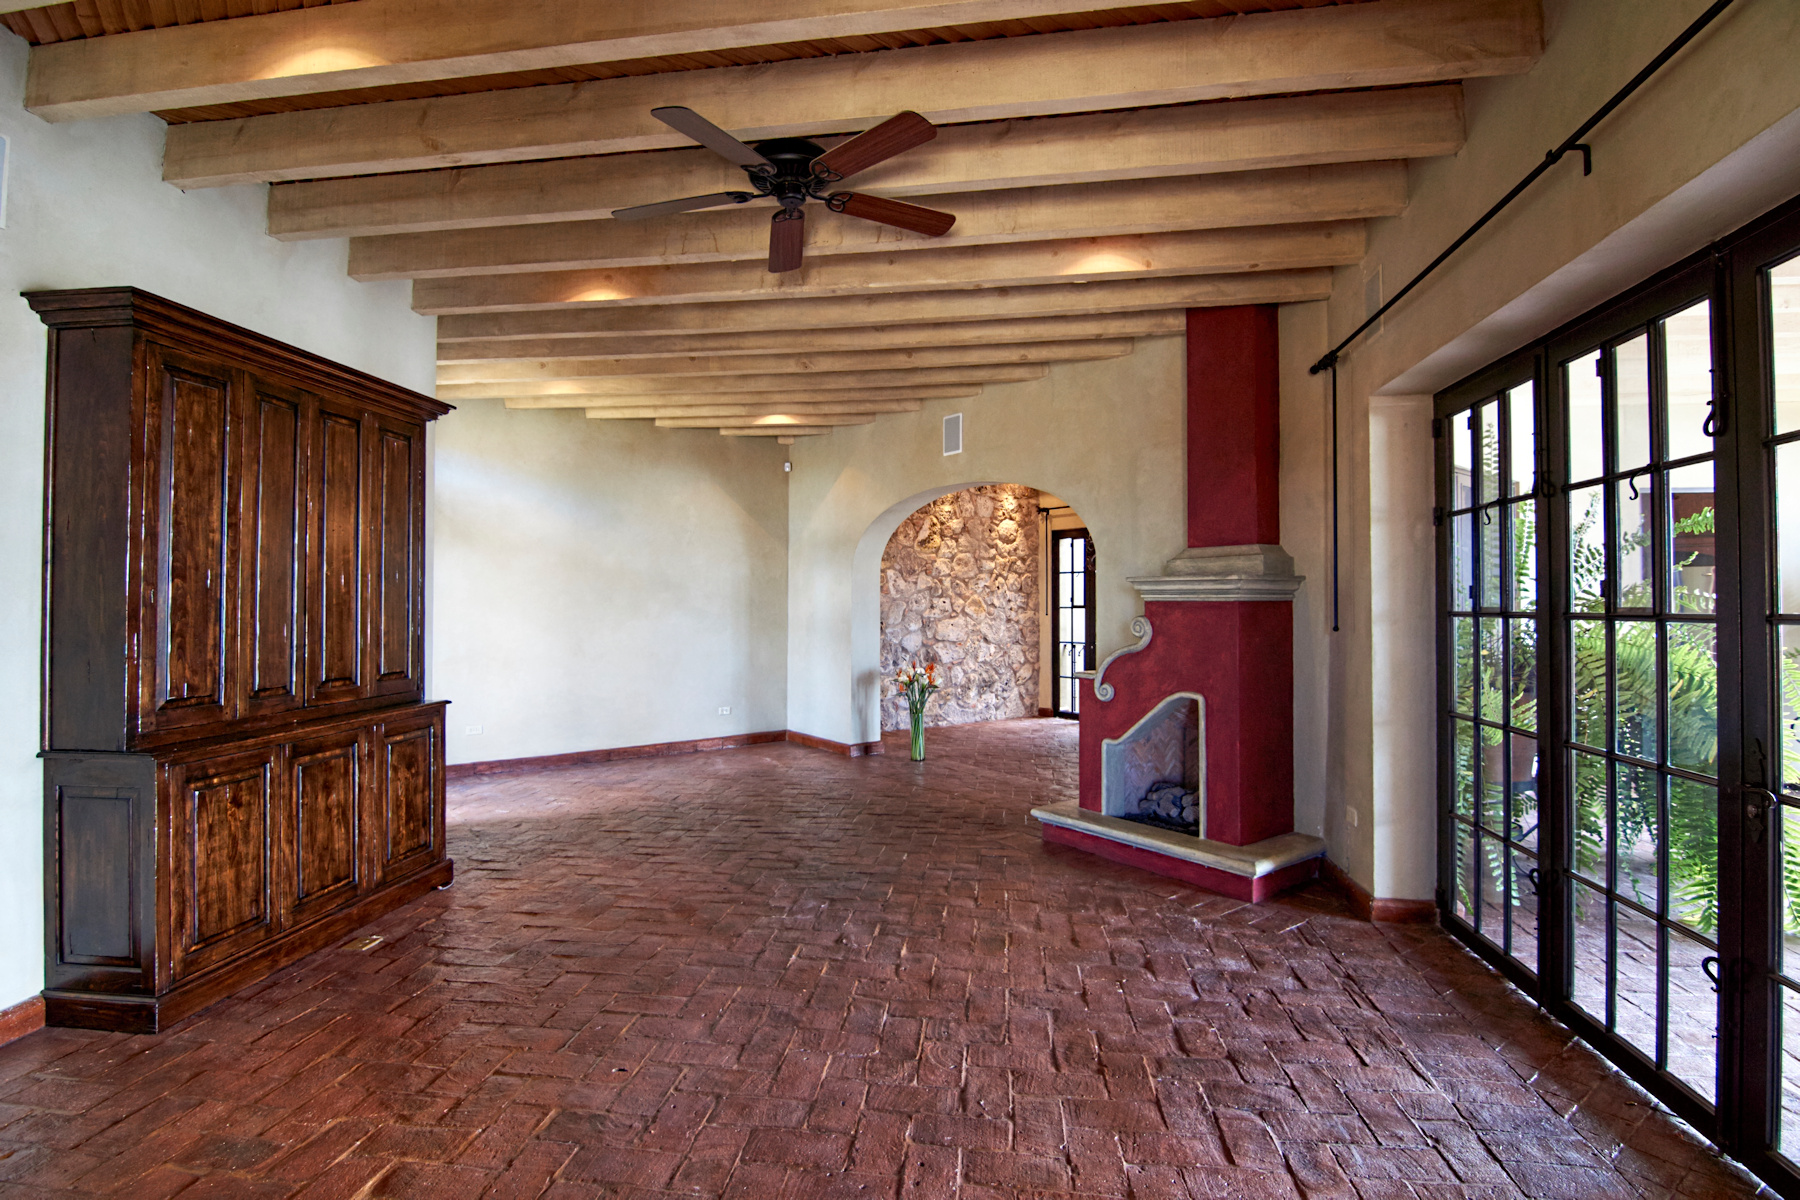 Single Family Home for Sale at CASA CHEPITOS Centro, San Miguel De Allende, Guanajuato Mexico